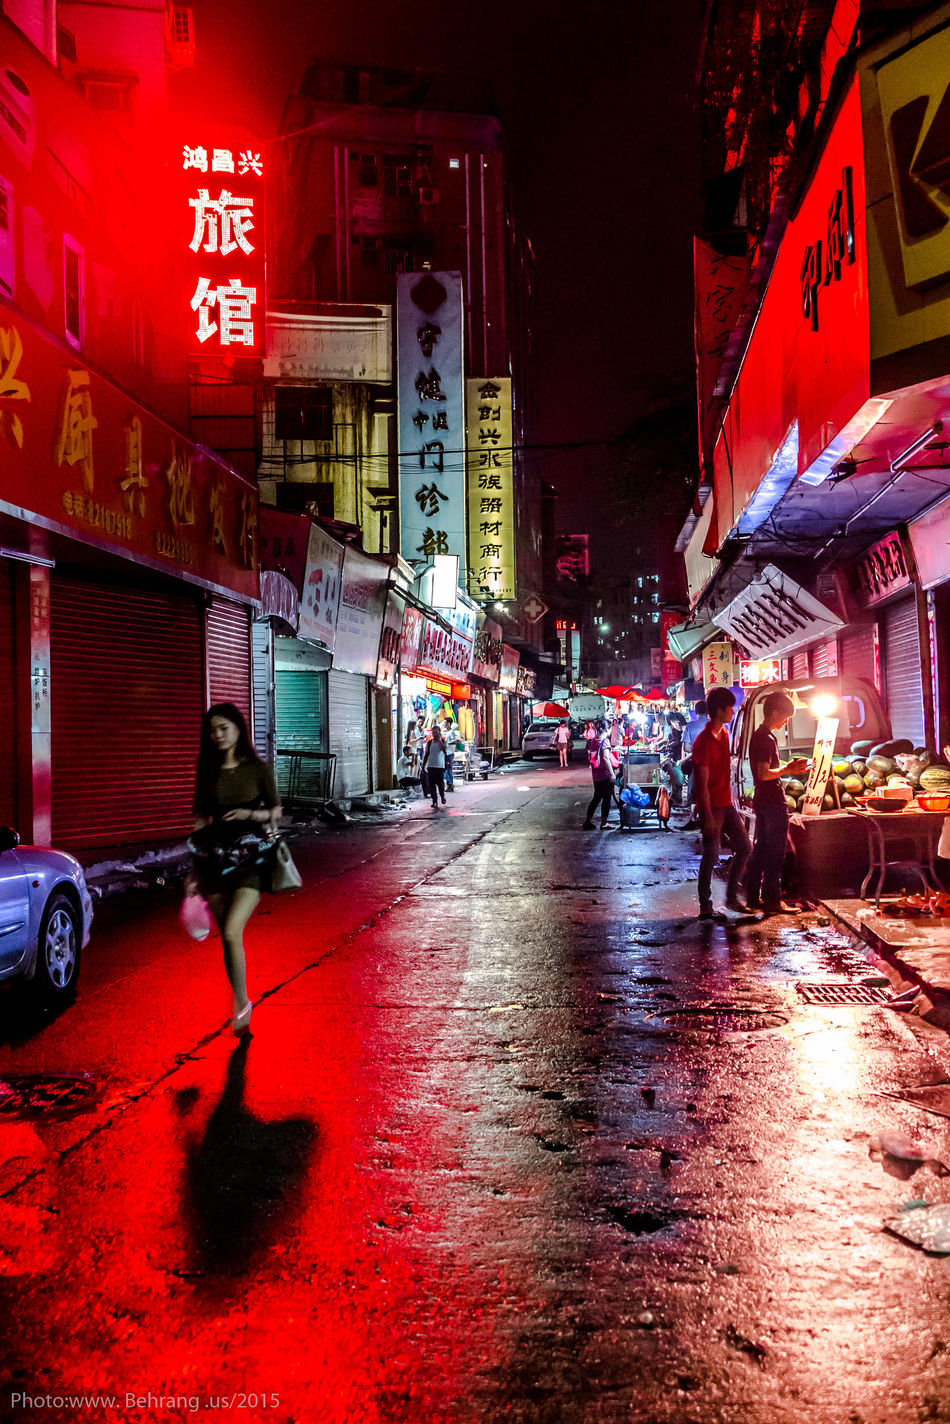 All The Neon Lights Shenzhen China Natural Light Behrang.us Chinailoved Canon G1xmkii Streetphoto_color Colorful Perspective Signs Streetphotography China Beauty China Style Chinatrip China Food Neon Sign Neonsigns Redlight